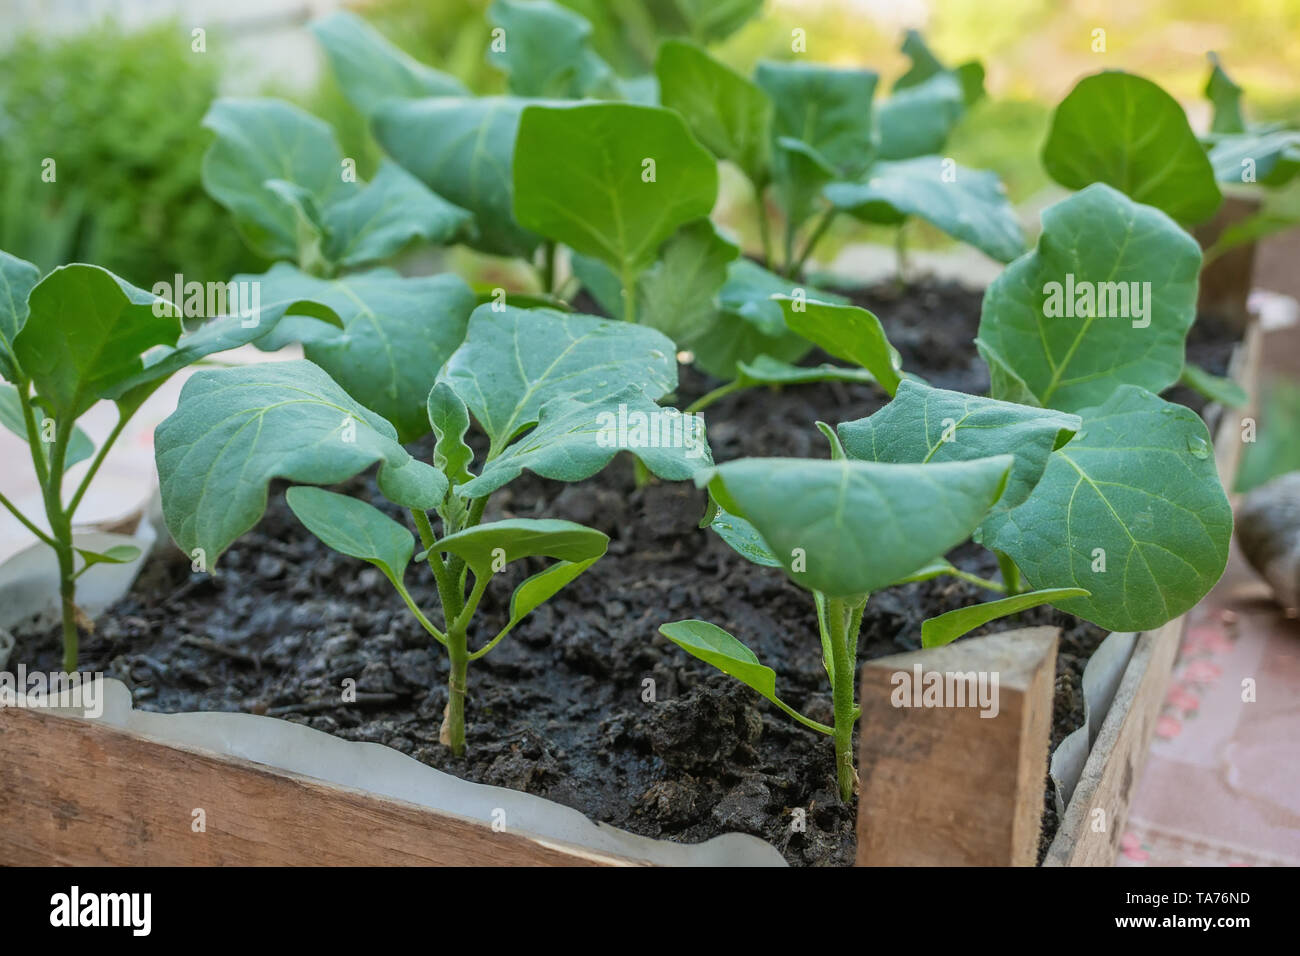 Eggplant seedlings in a cardboard eco-friendly container are ready for planting in a greenhouse. Spring work in the garden. - Stock Image